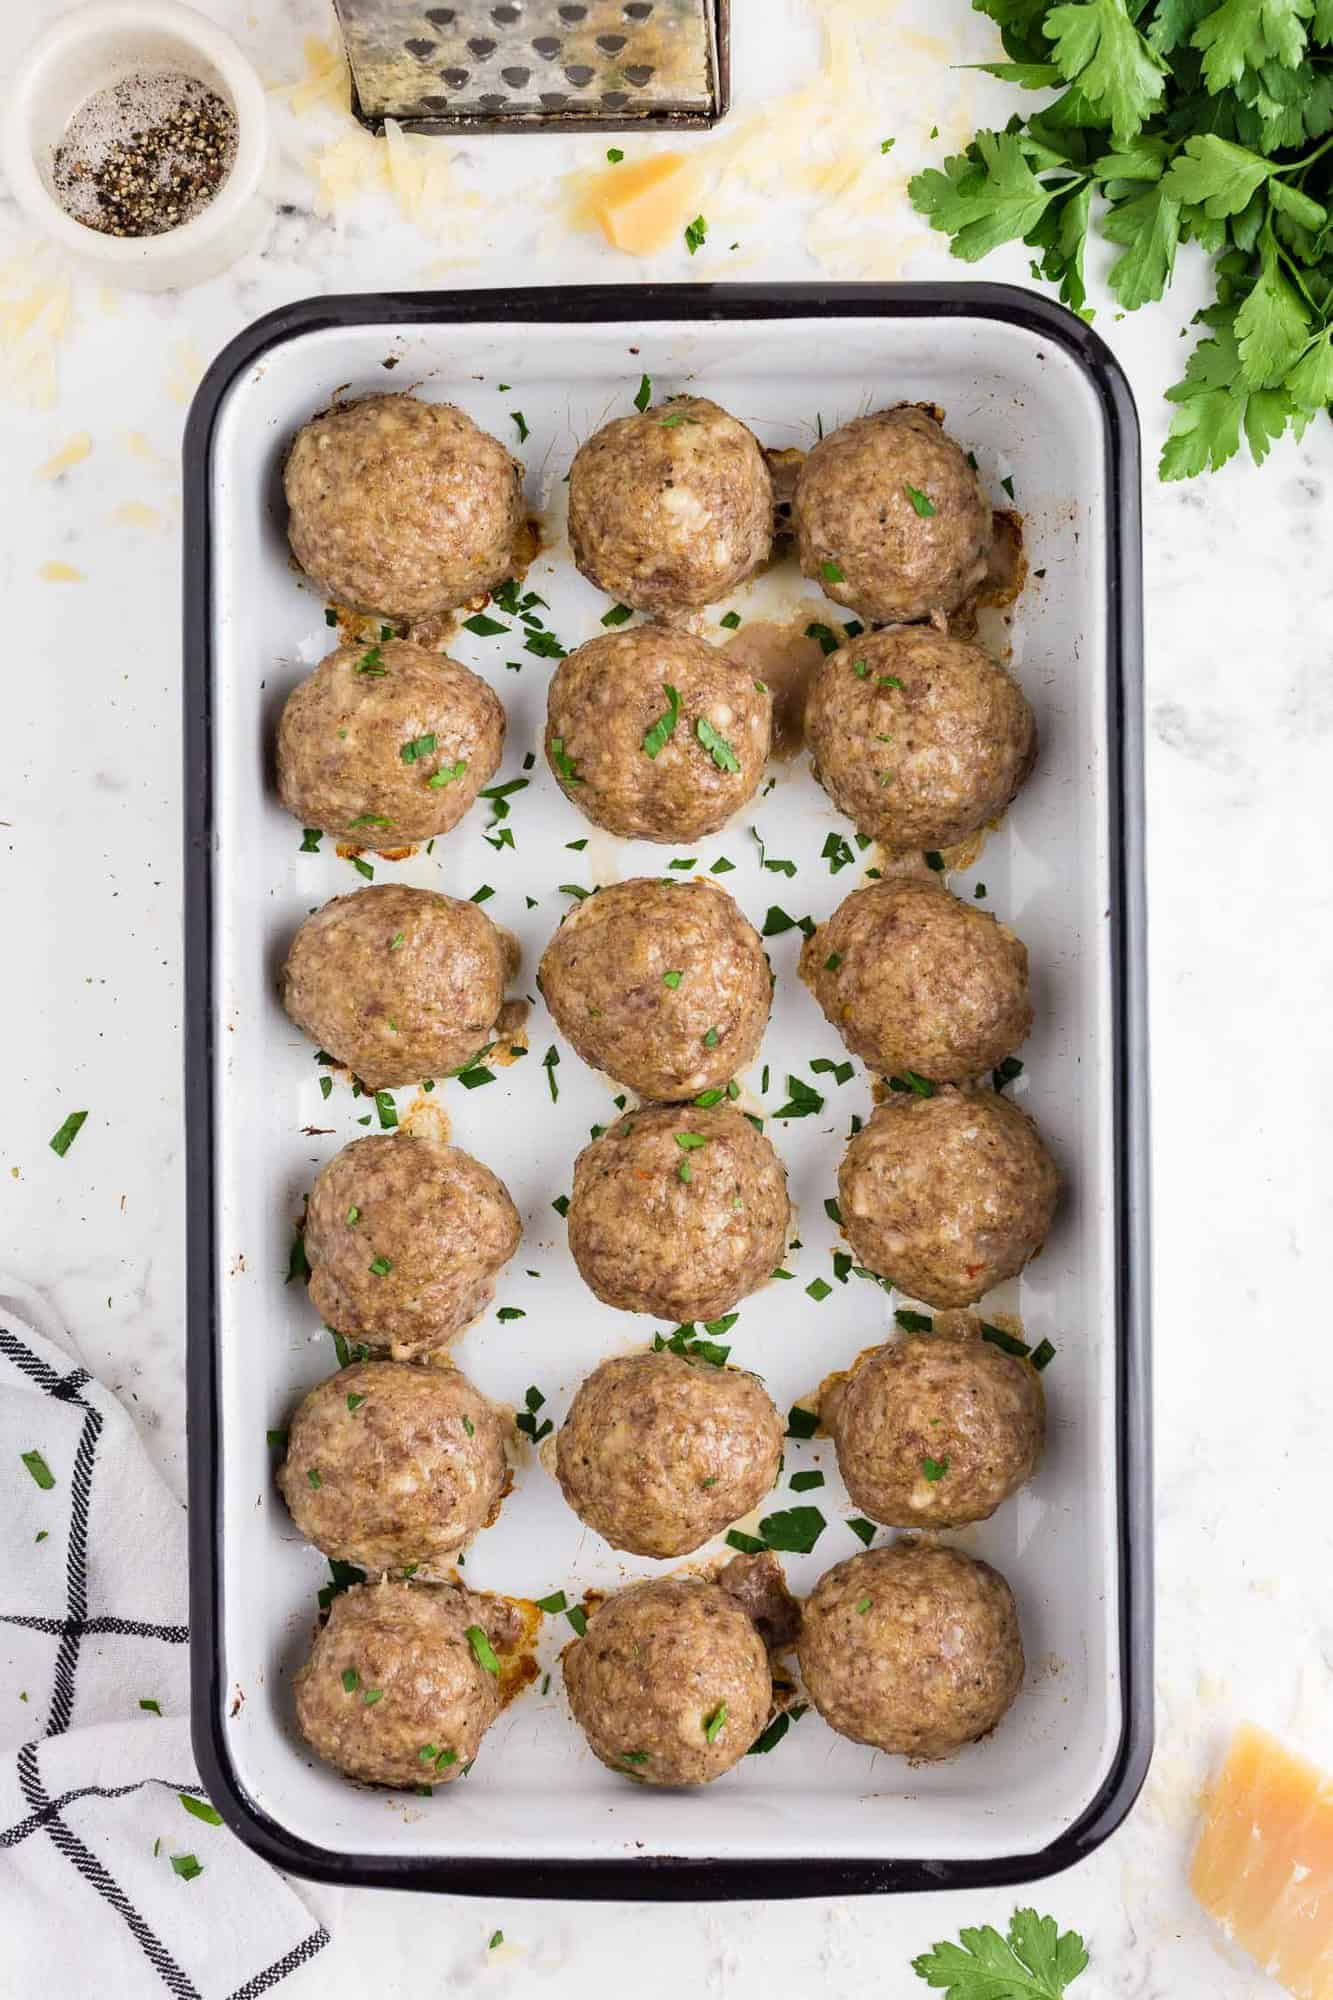 Cooked meatballs in a baking dish.